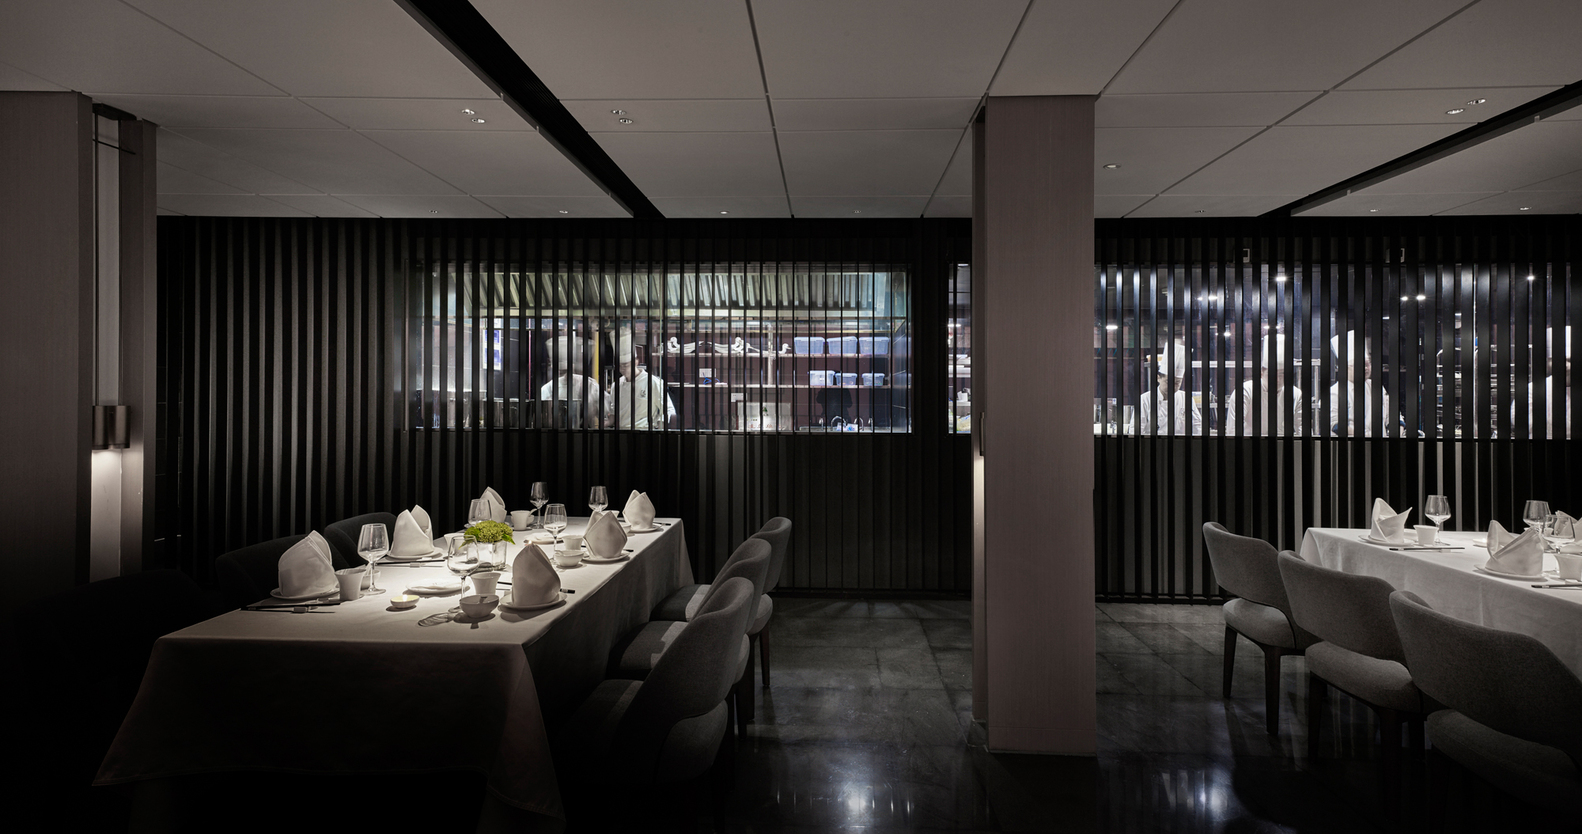 restaurant dining room design. #24 Cathay Restaurant,1F Dining Room. Image © Kuo-min Lee Restaurant Room Design D